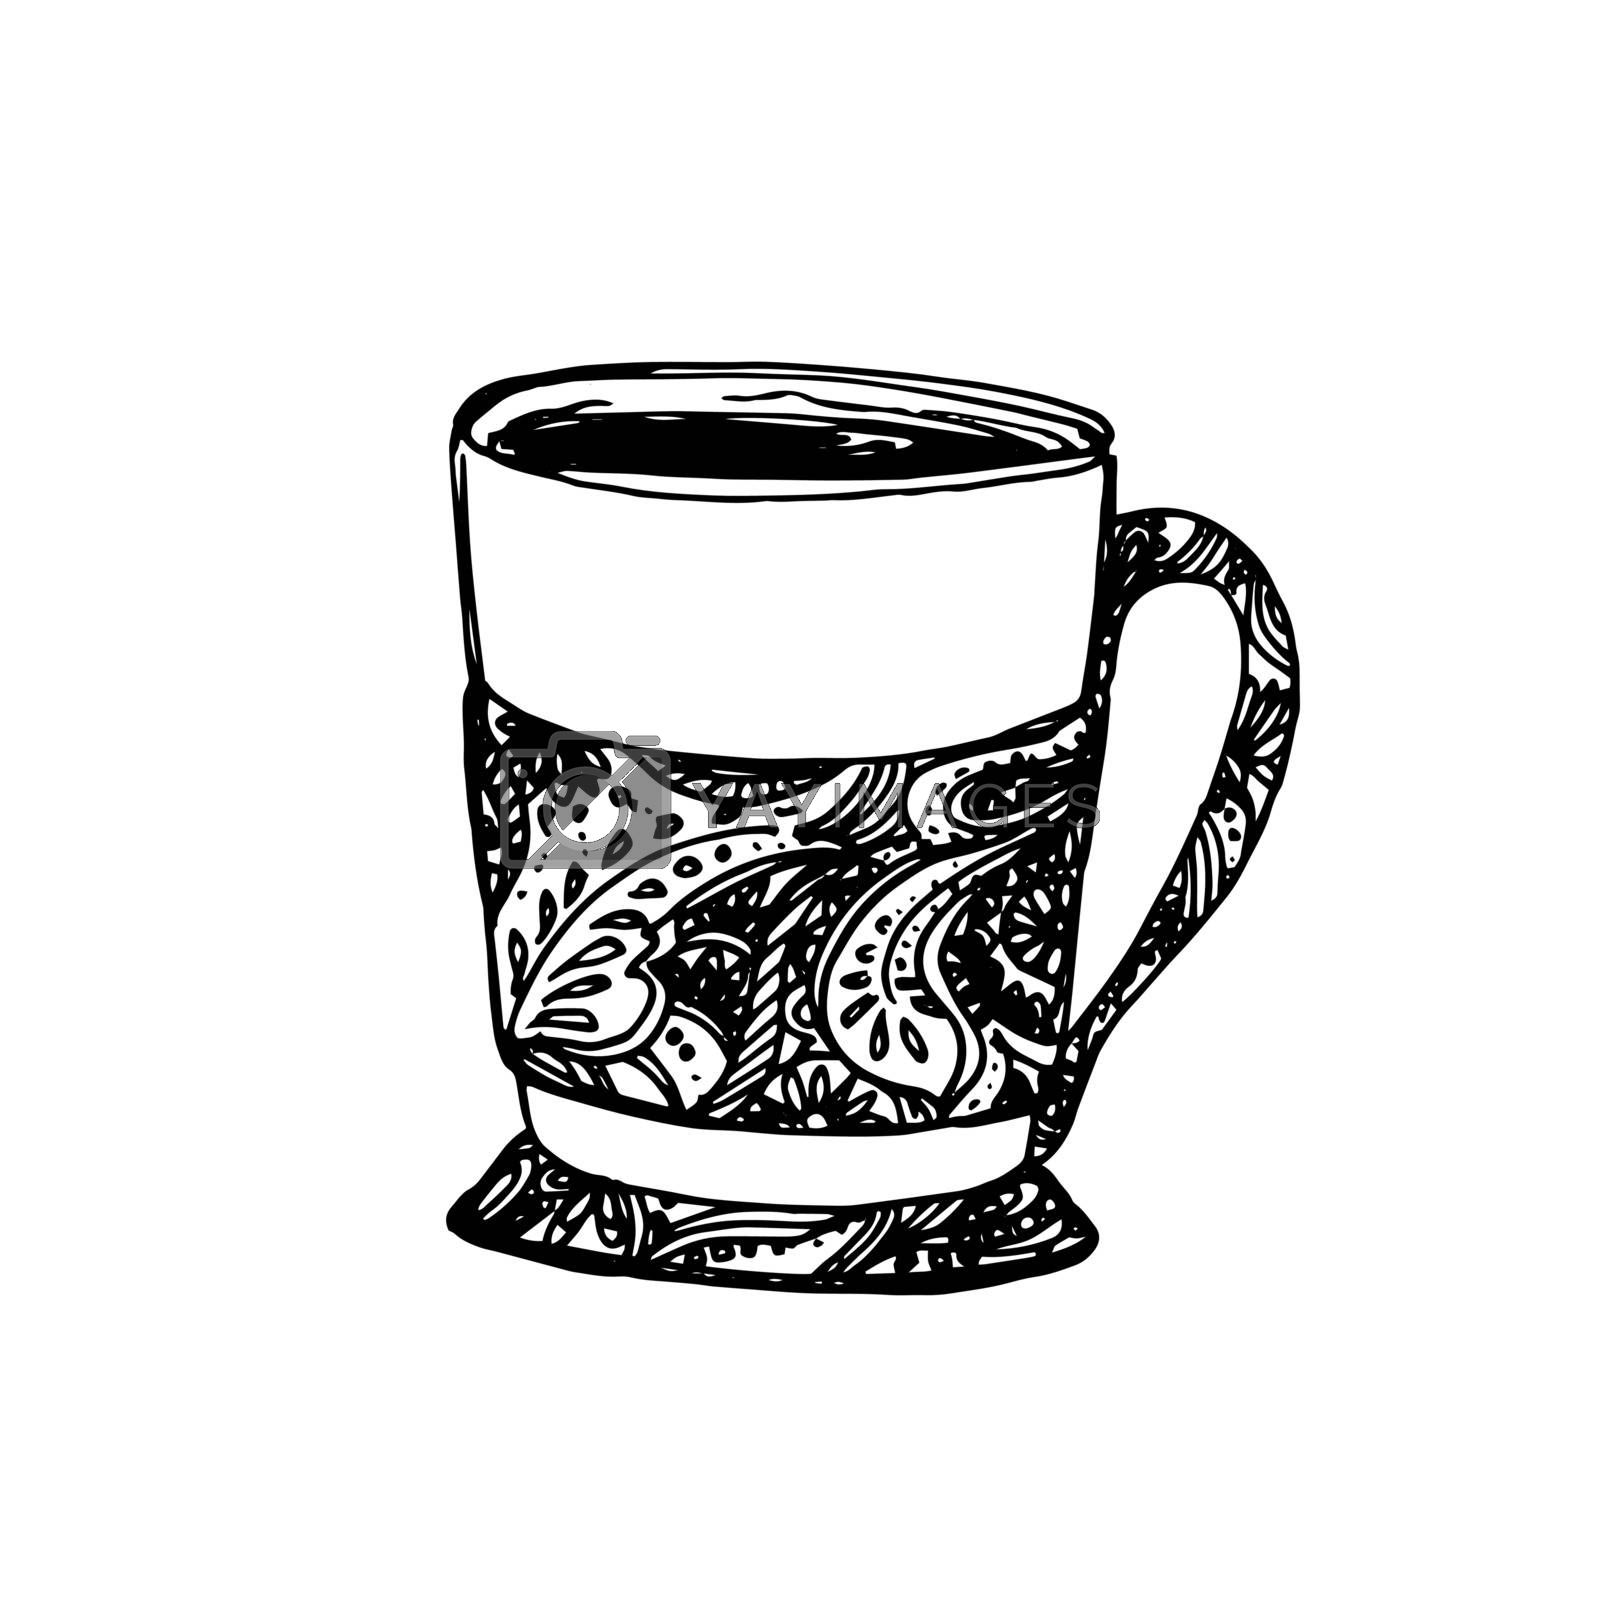 Hand Drawn Sketch of Tea Cup. Vintage Sketch. Great for label, banner, poster